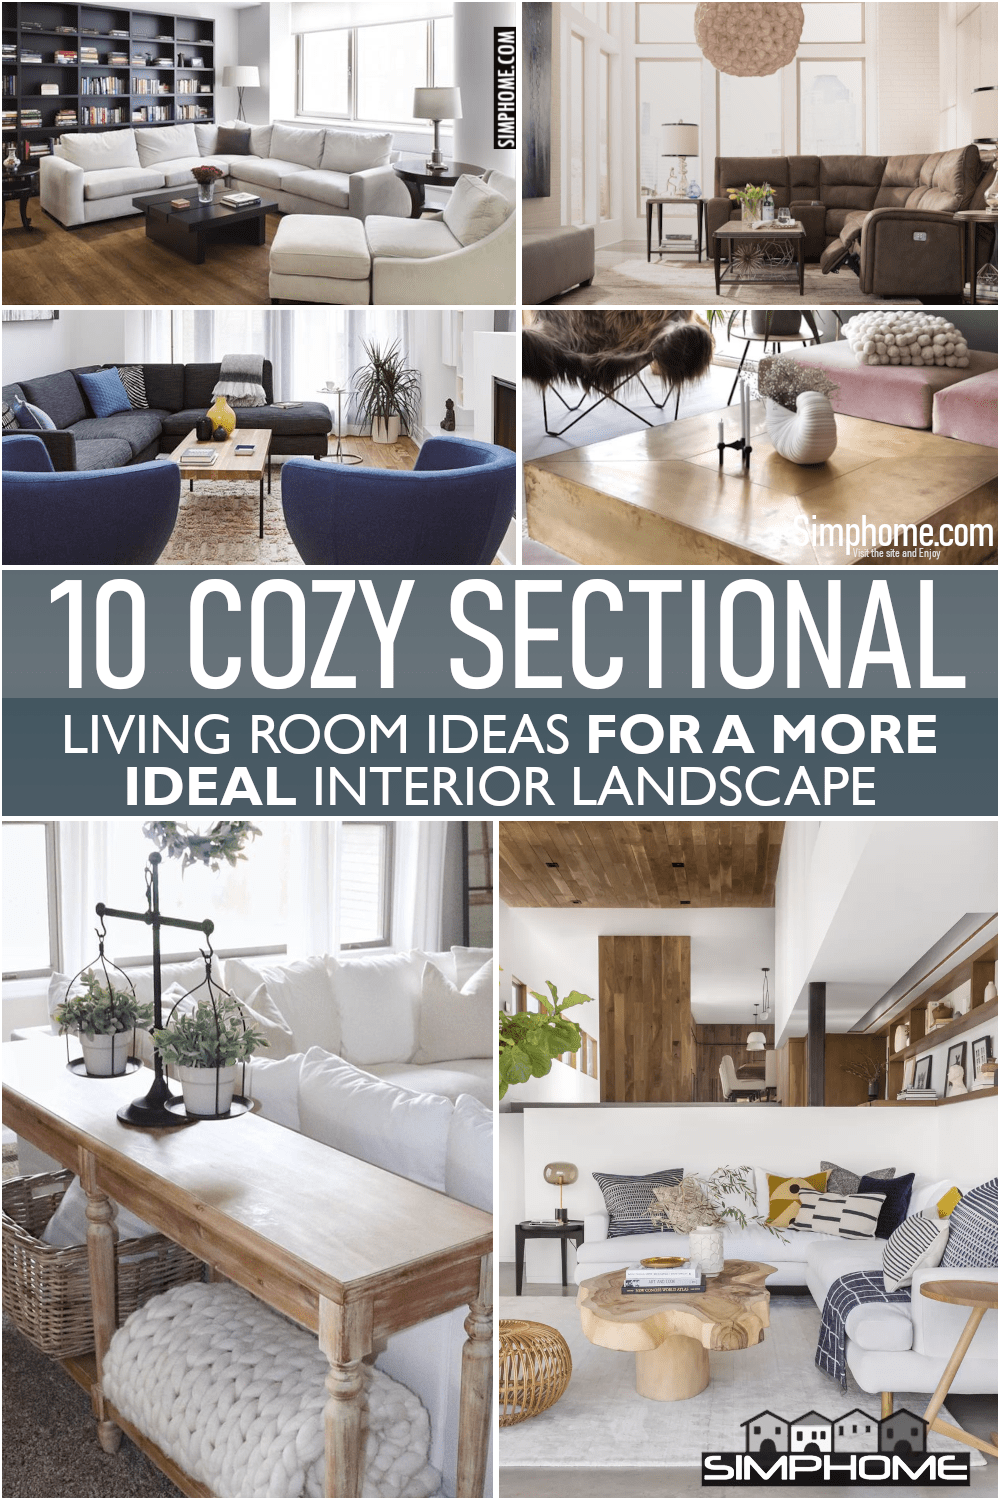 10 Cozy Sectional Living Room Ideas via Simphome.comFeatured